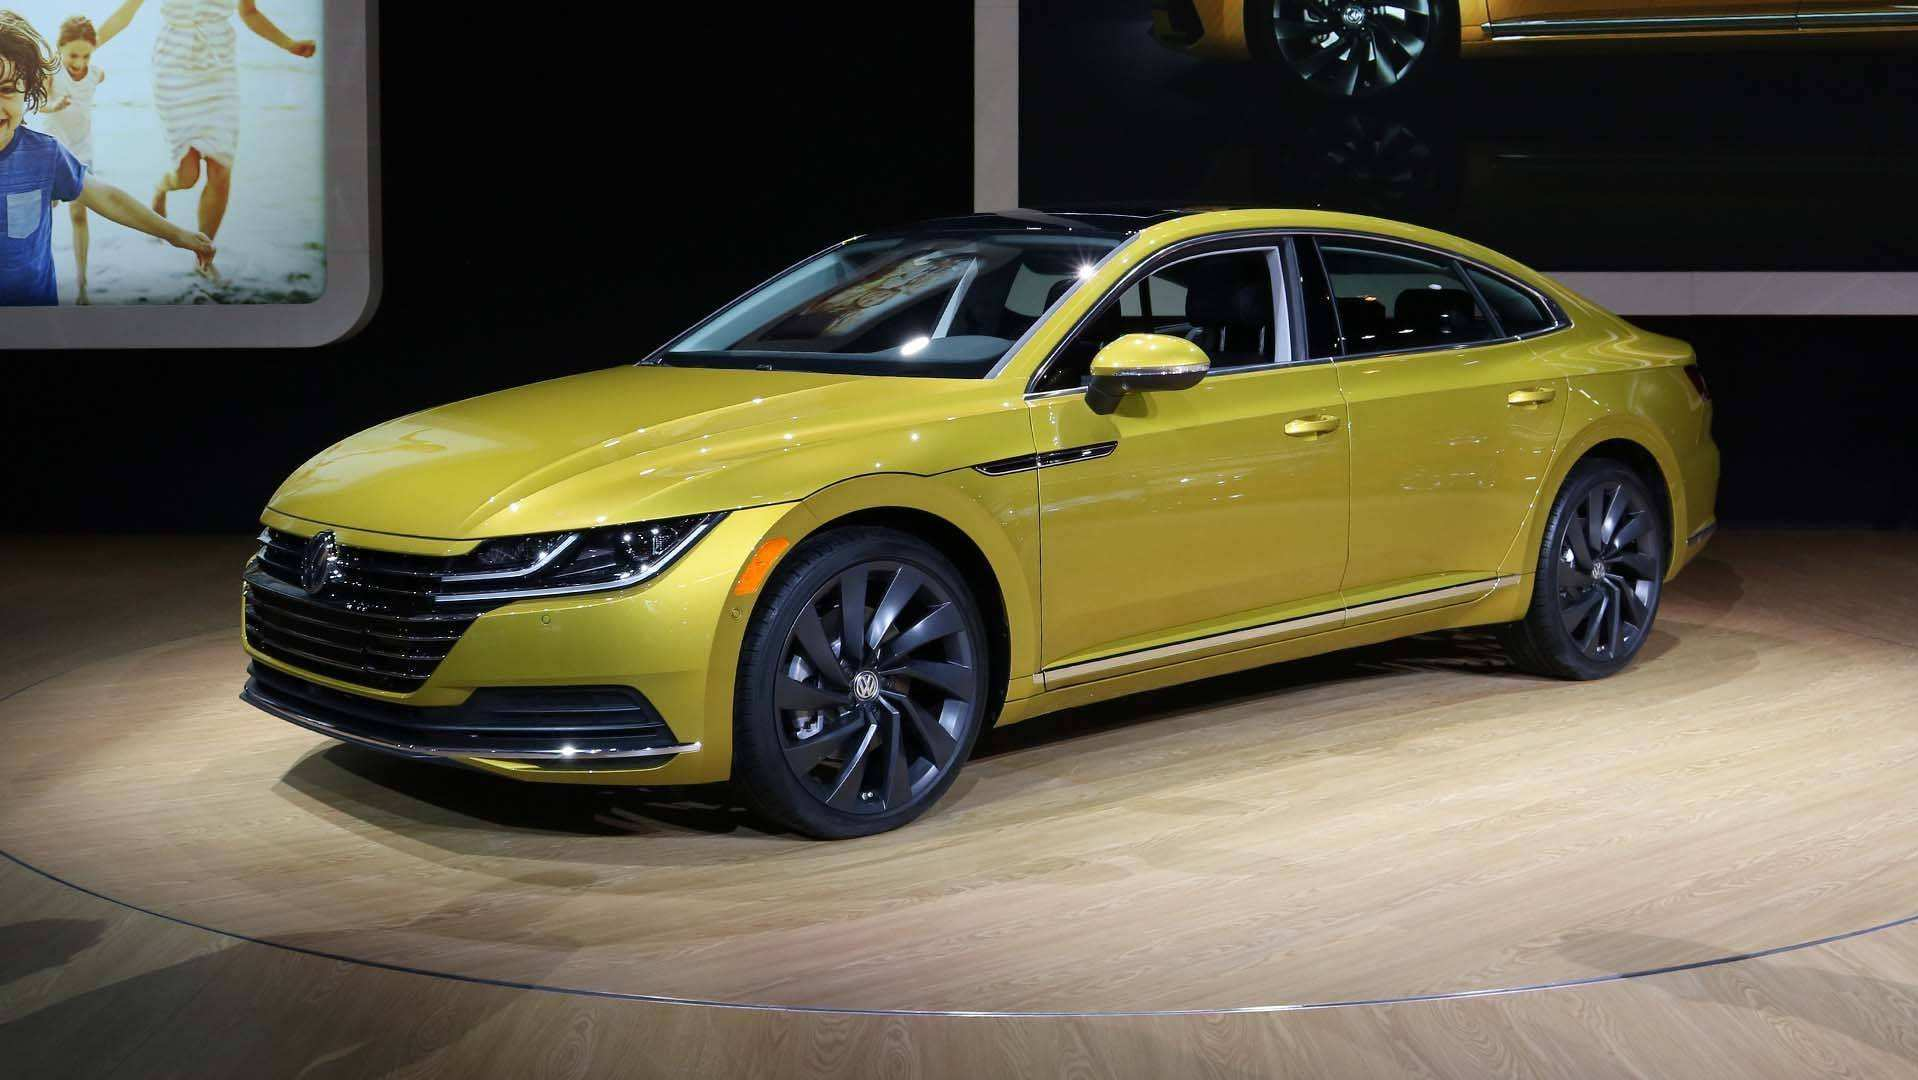 22 New 2019 Vw Arteon Research New for 2019 Vw Arteon